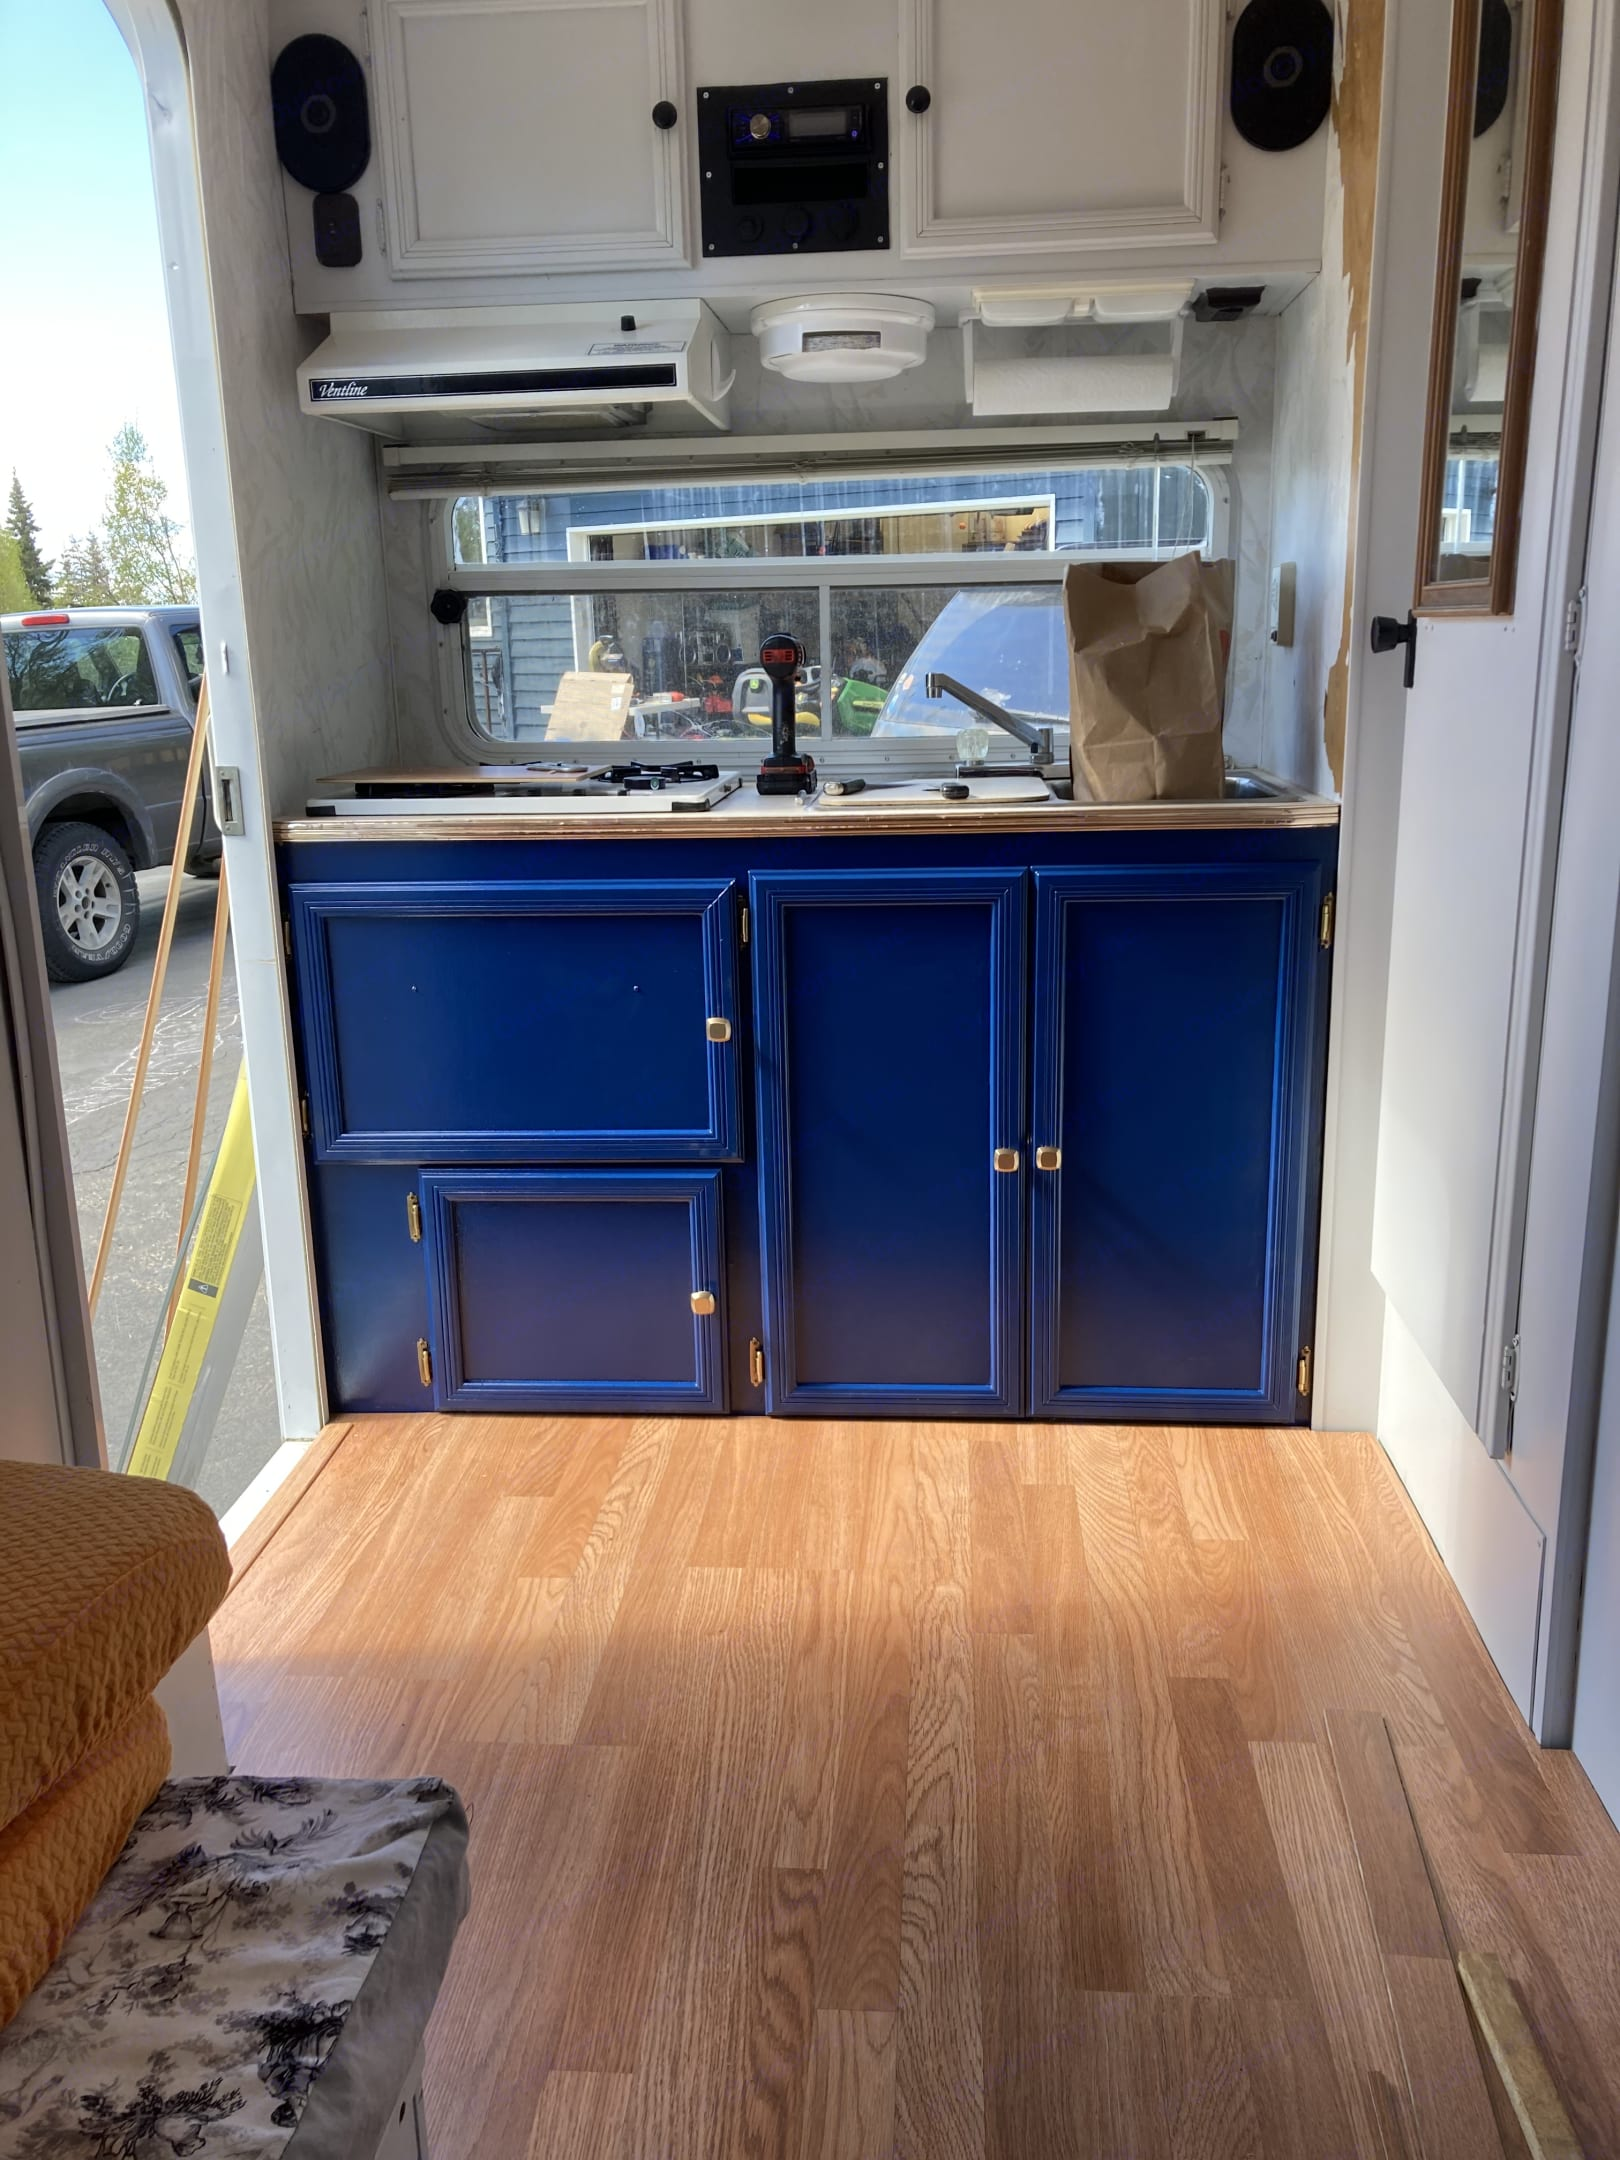 I am renovating right now. I'll update as I finish. Cabinets look beautiful! . Aerolite Travel Trailer 1996